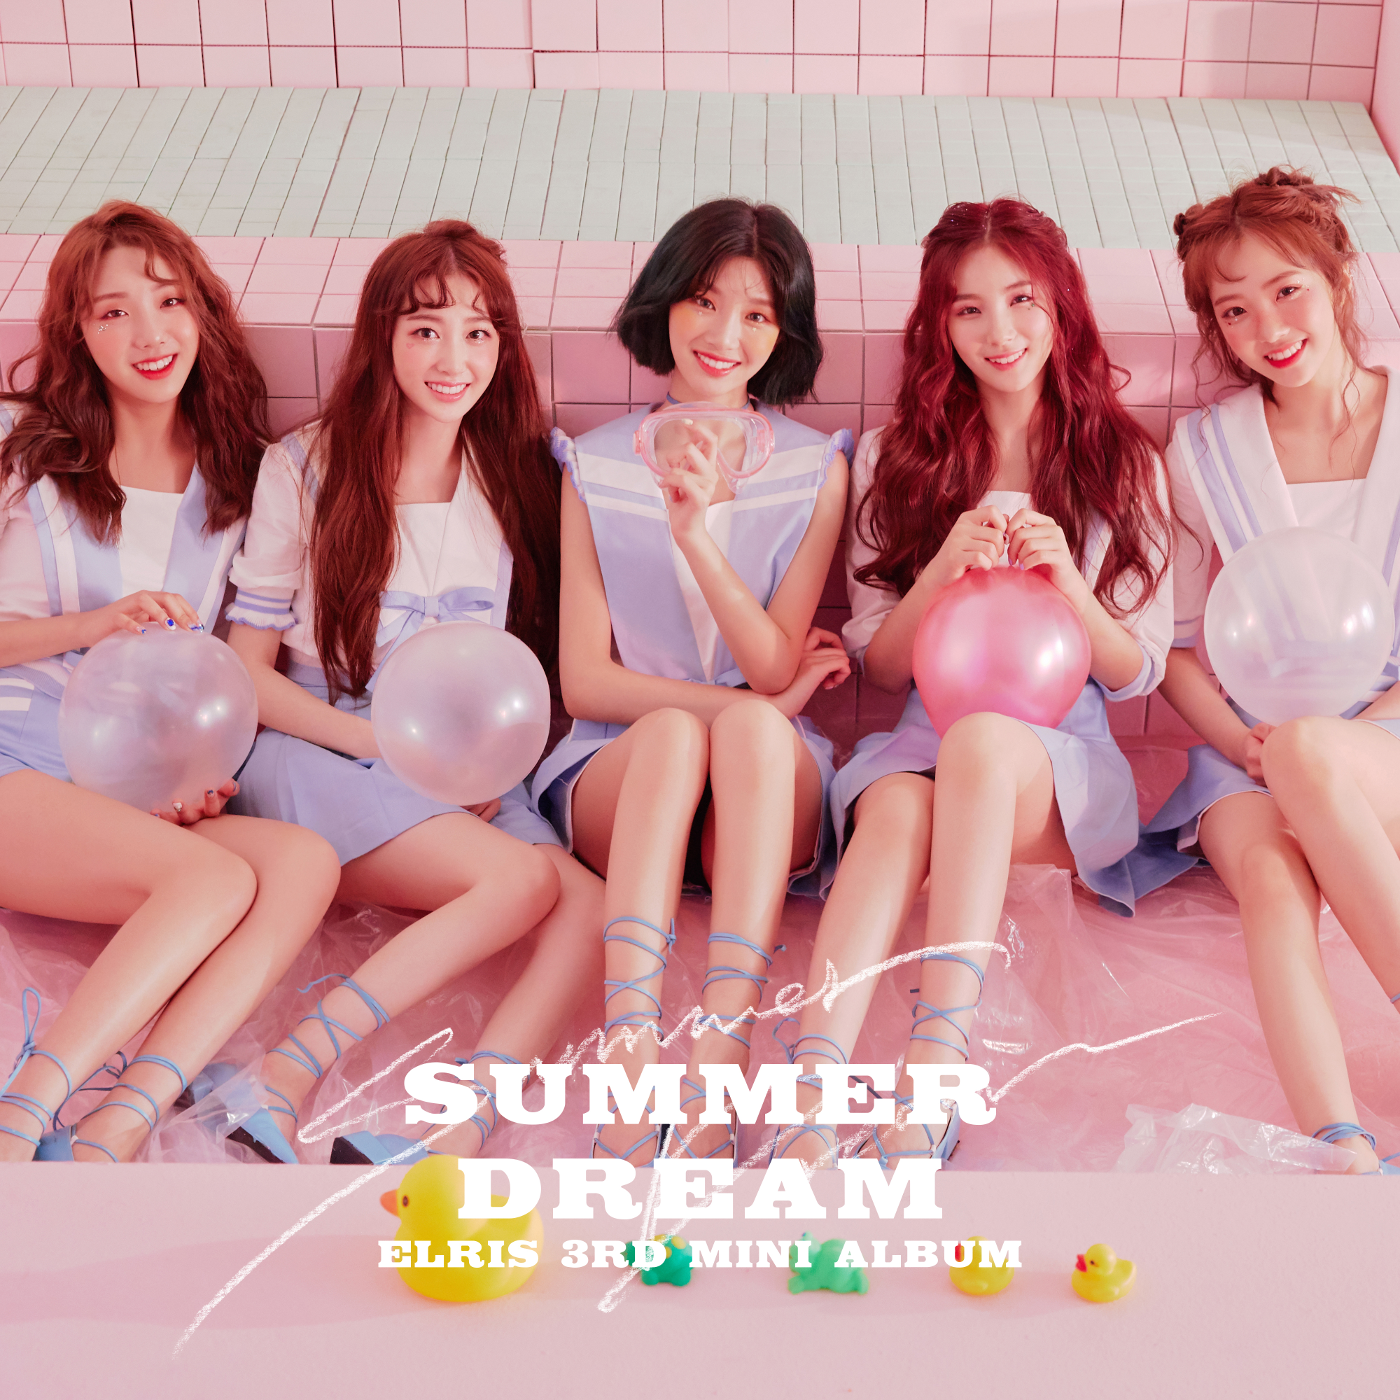 Summer Dream (ELRIS)